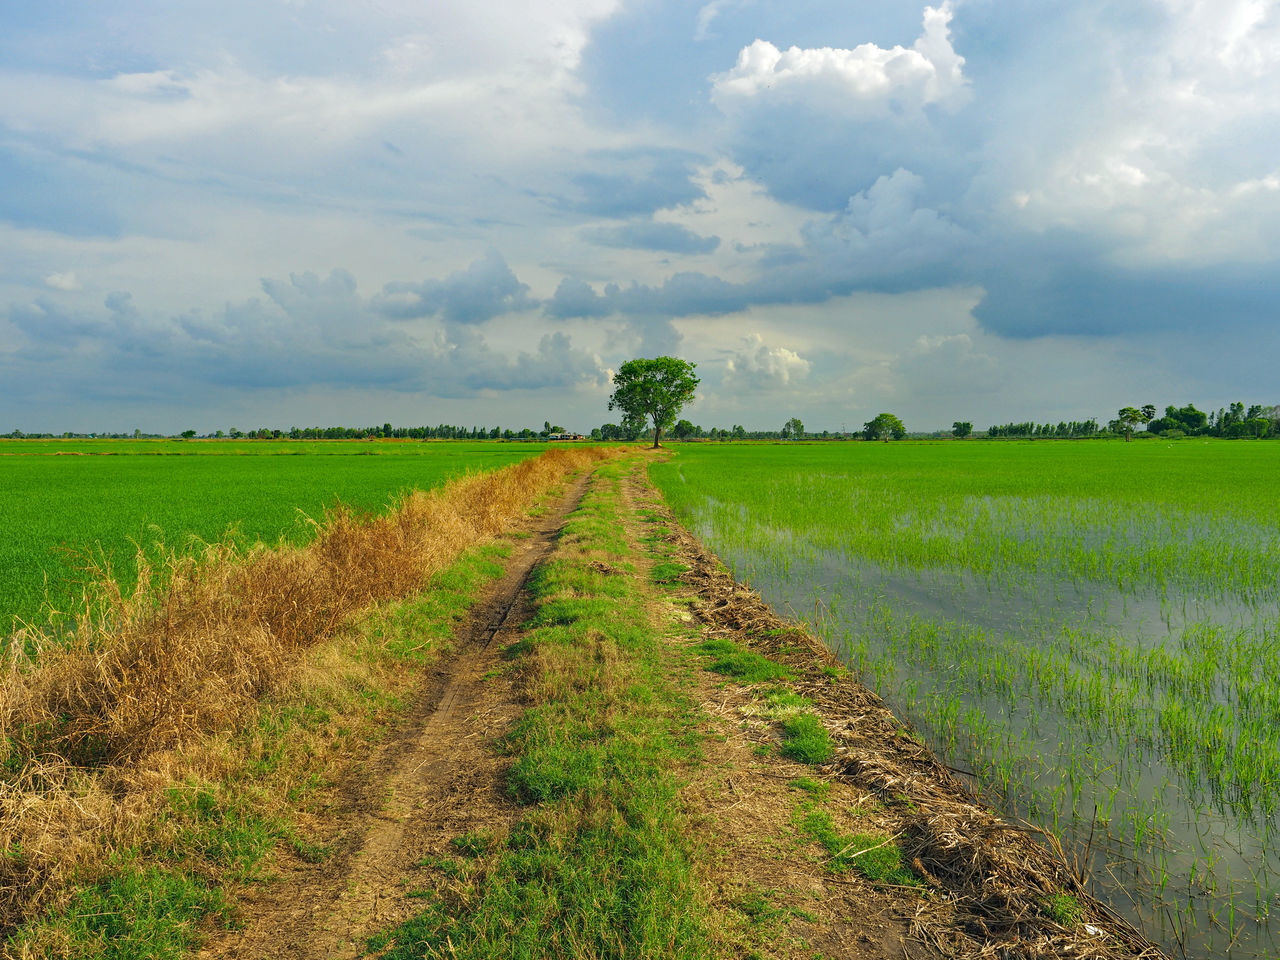 Agriculture Beauty In Nature Cereal Plant Cloud - Sky Crop  Cultivated Land Day Farm Field Grass Green Color Growth Landscape Nature No People Outdoors Plough Plowed Field Rural Scene Scenics Sky Tire Track Tranquil Scene Tranquility